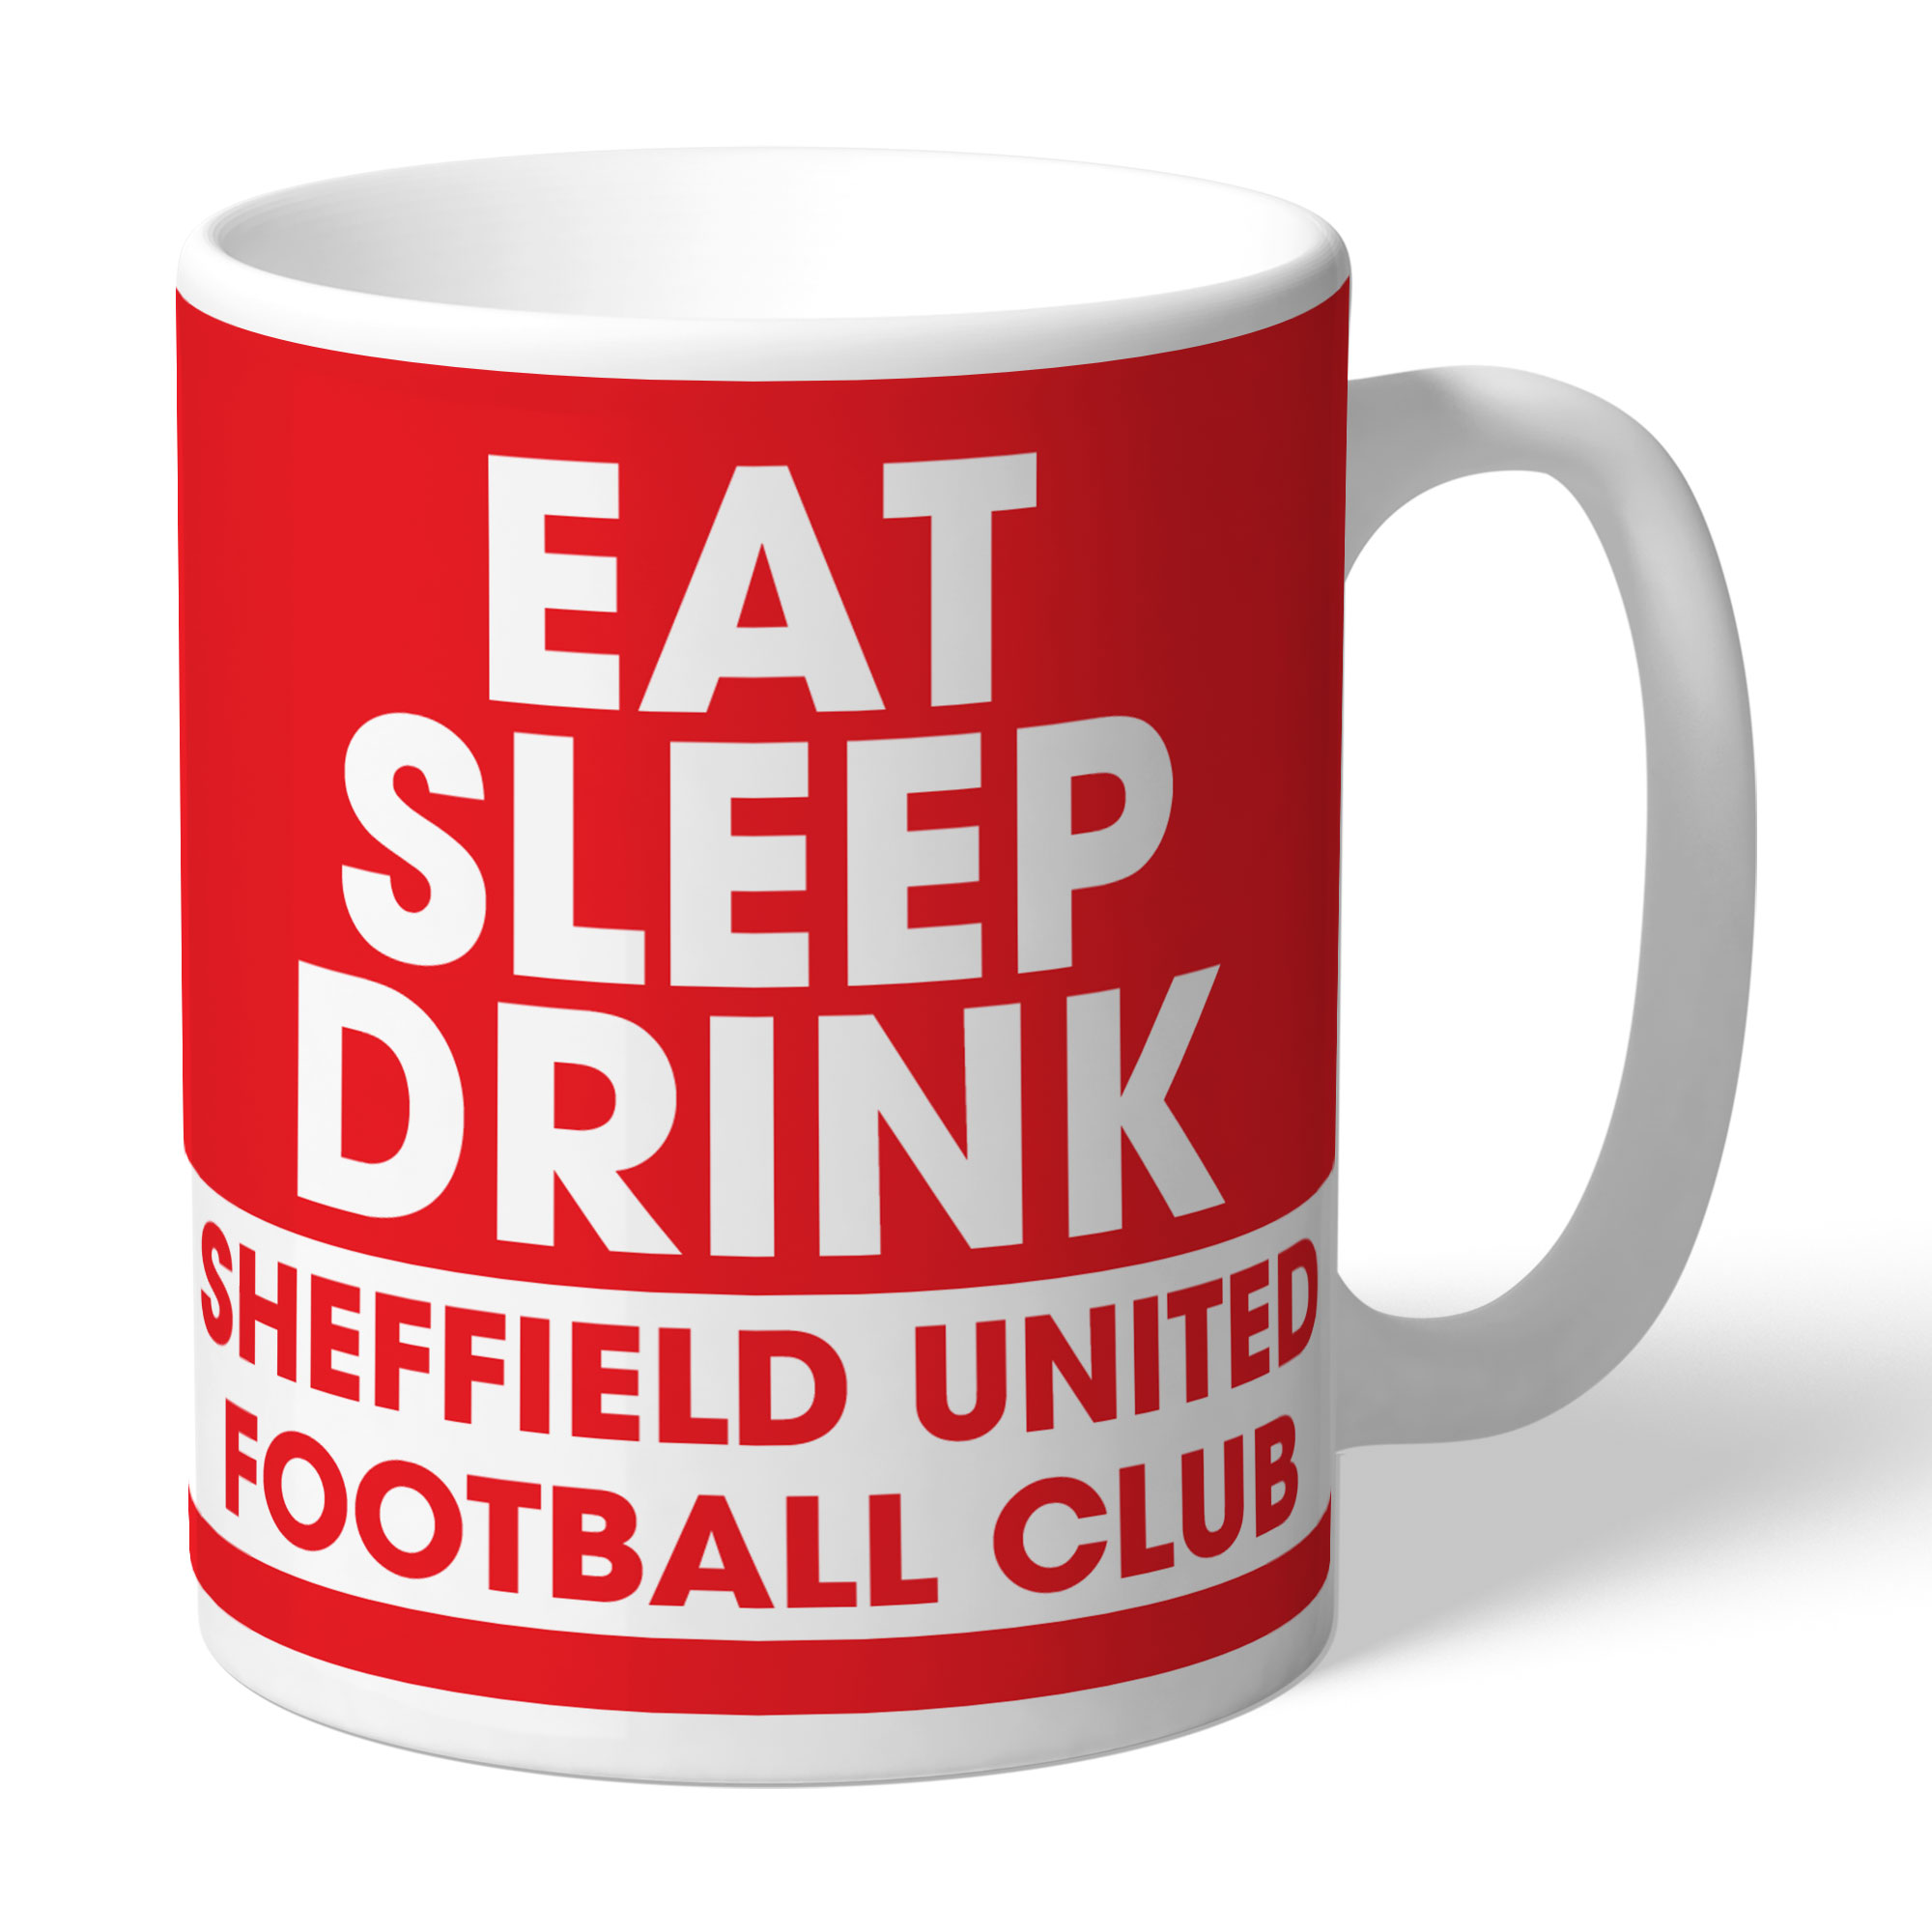 Sheffield United FC Eat Sleep Drink Mug